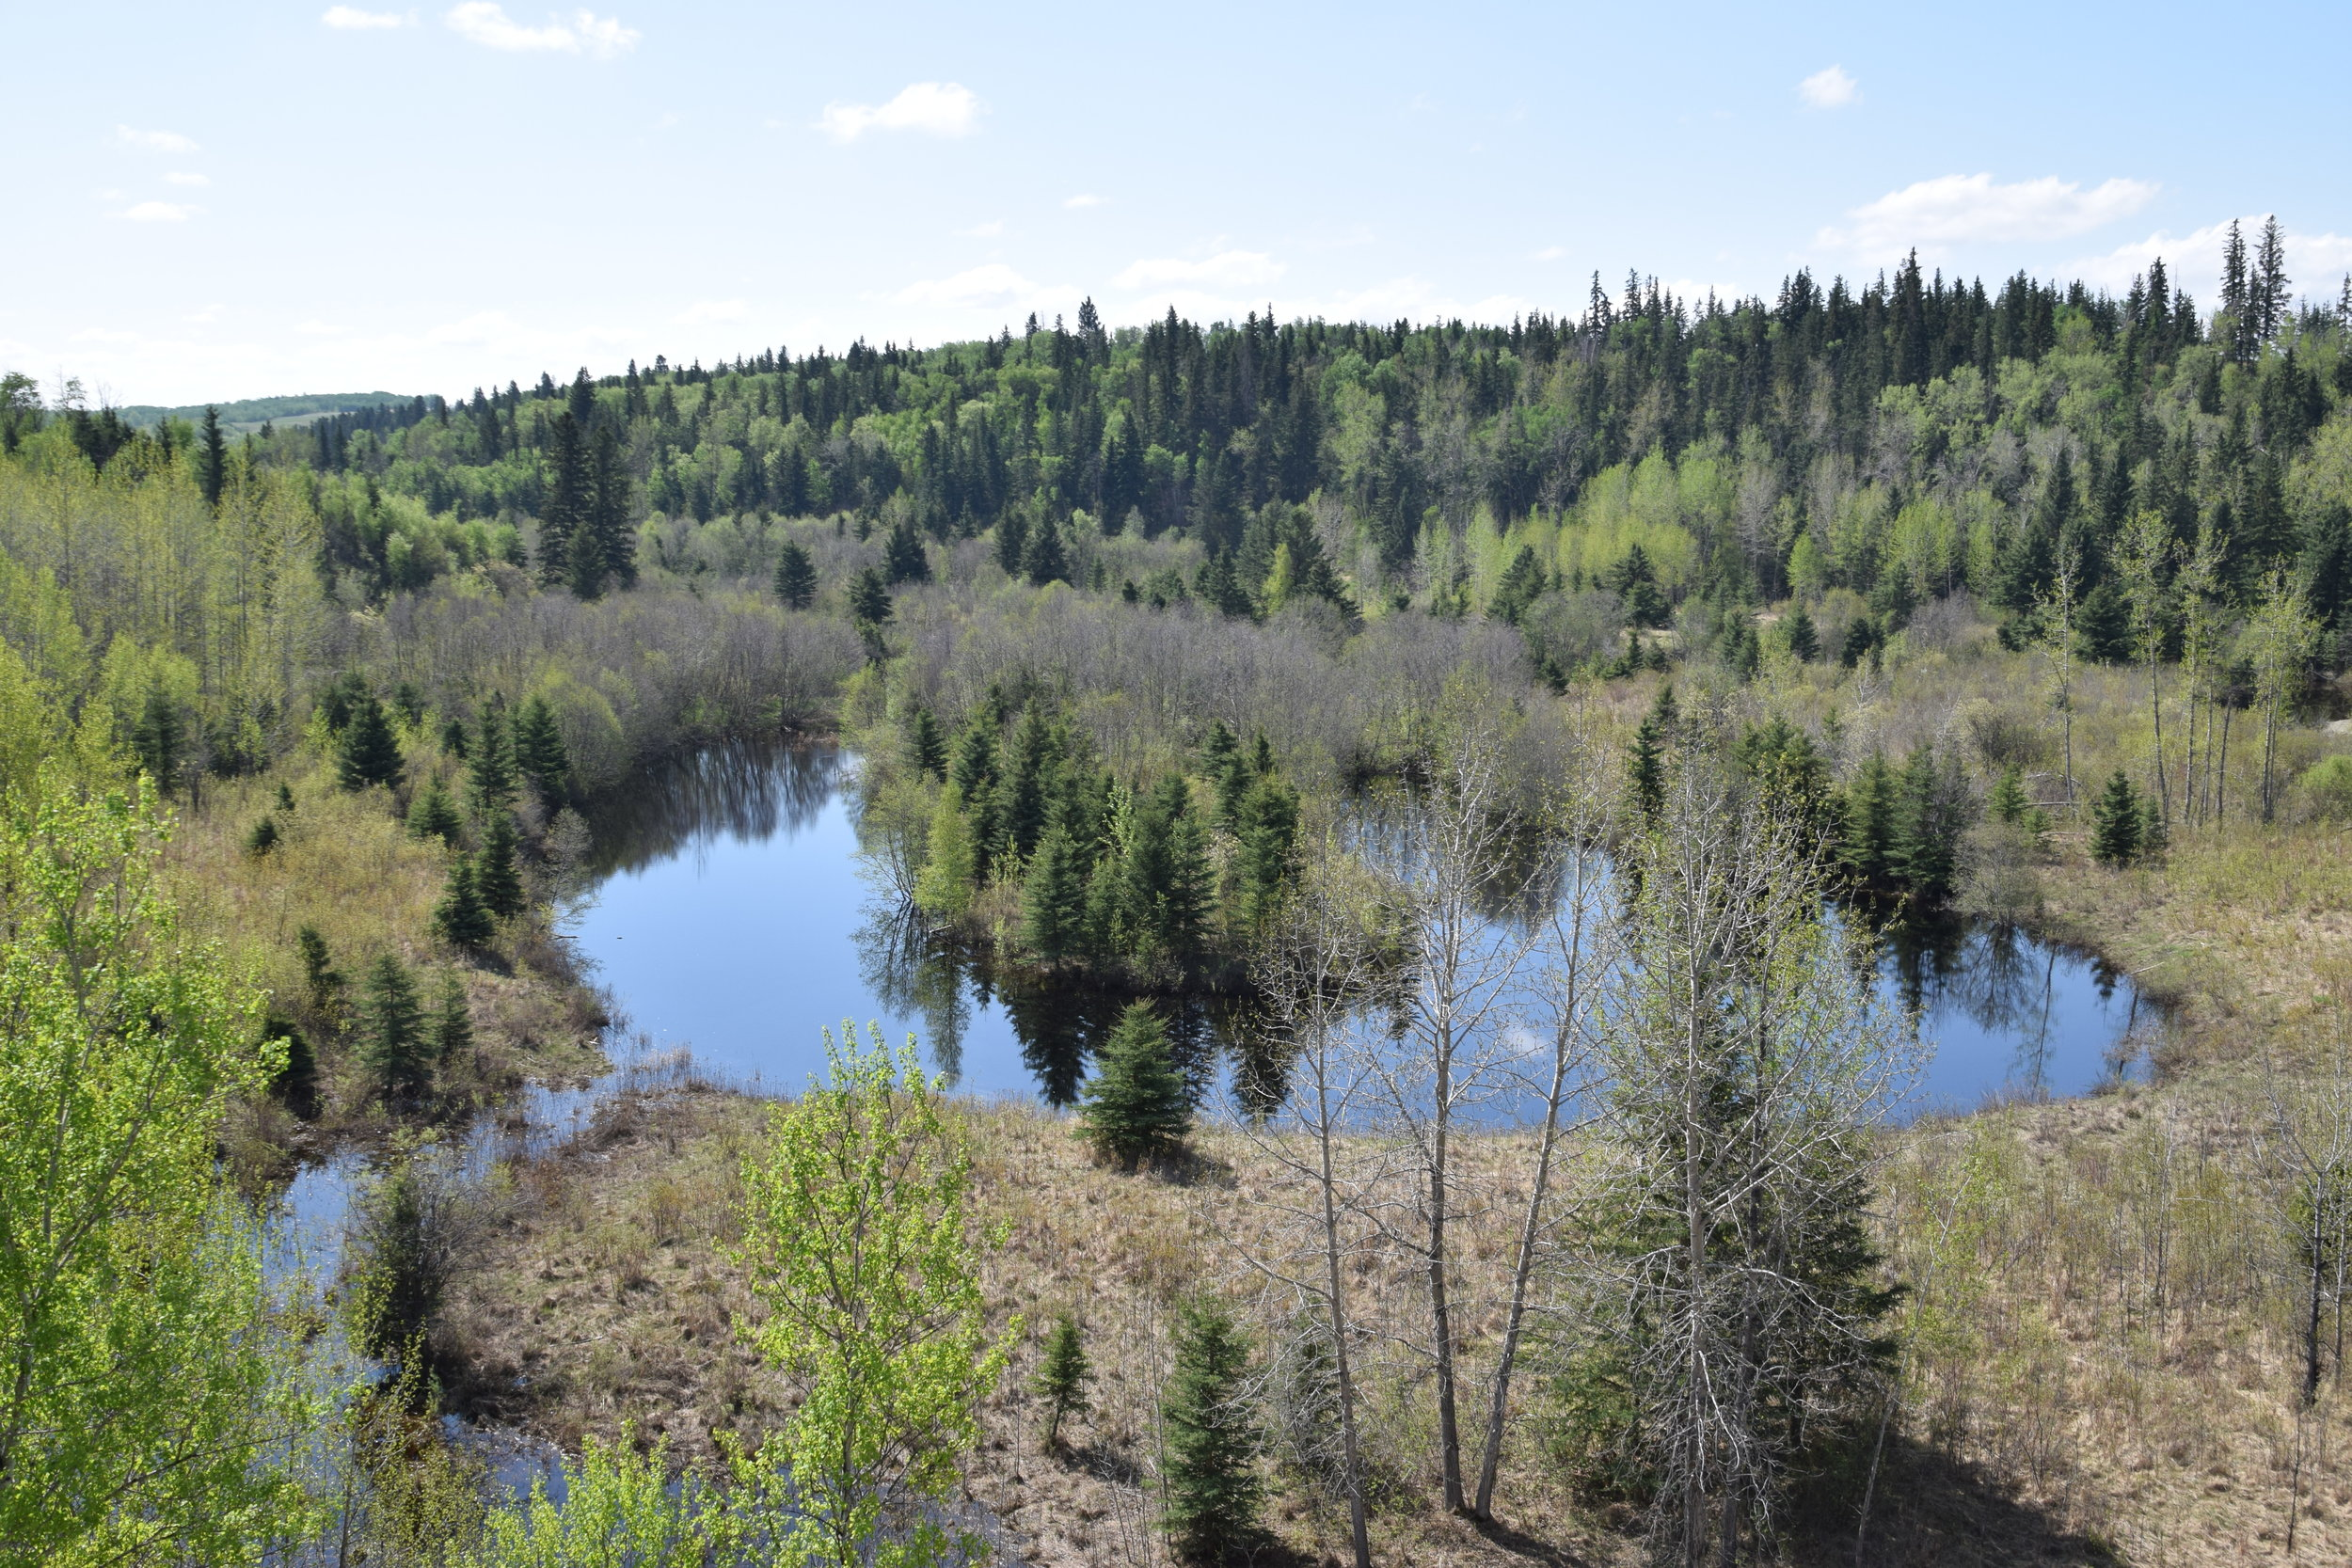 The Edmonton Area Land Trust has had issues with off-highway vehicles trespassing on Pipestone Creek Conservation Lands.